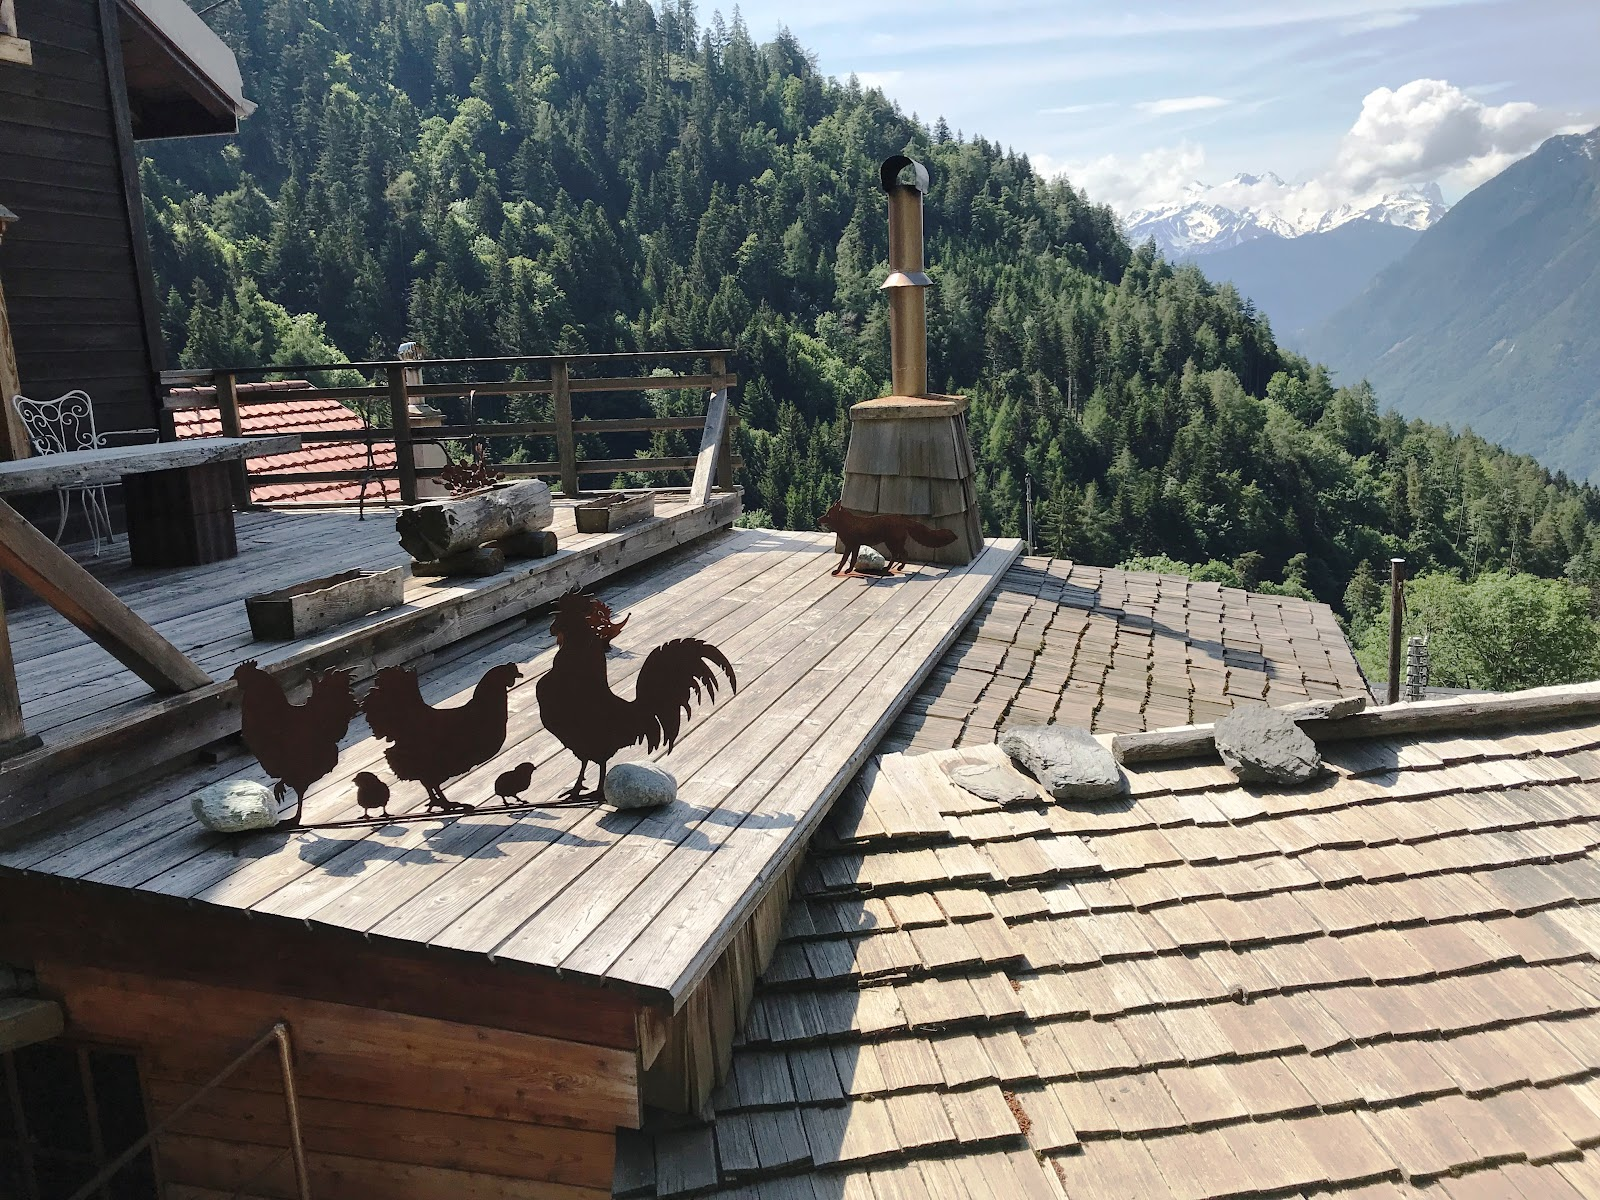 Climbing Rionda by bike - rooster weather vane on rooftop